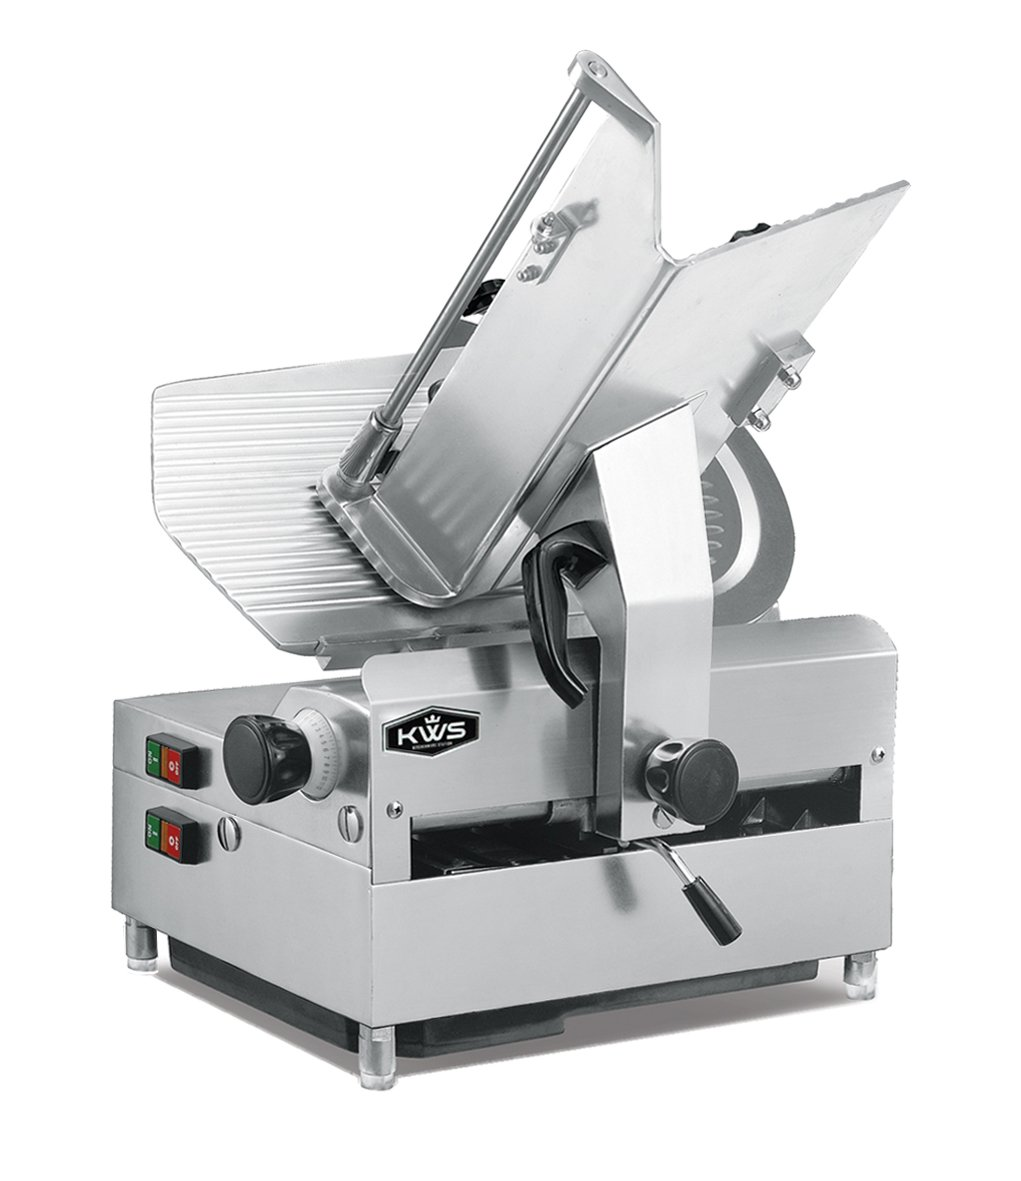 KWS Automatic Commercial 1050w Electric Meat Slicer 12'' Stainless Steel Blade, Frozen Meat, Food Slicer/Low Noises